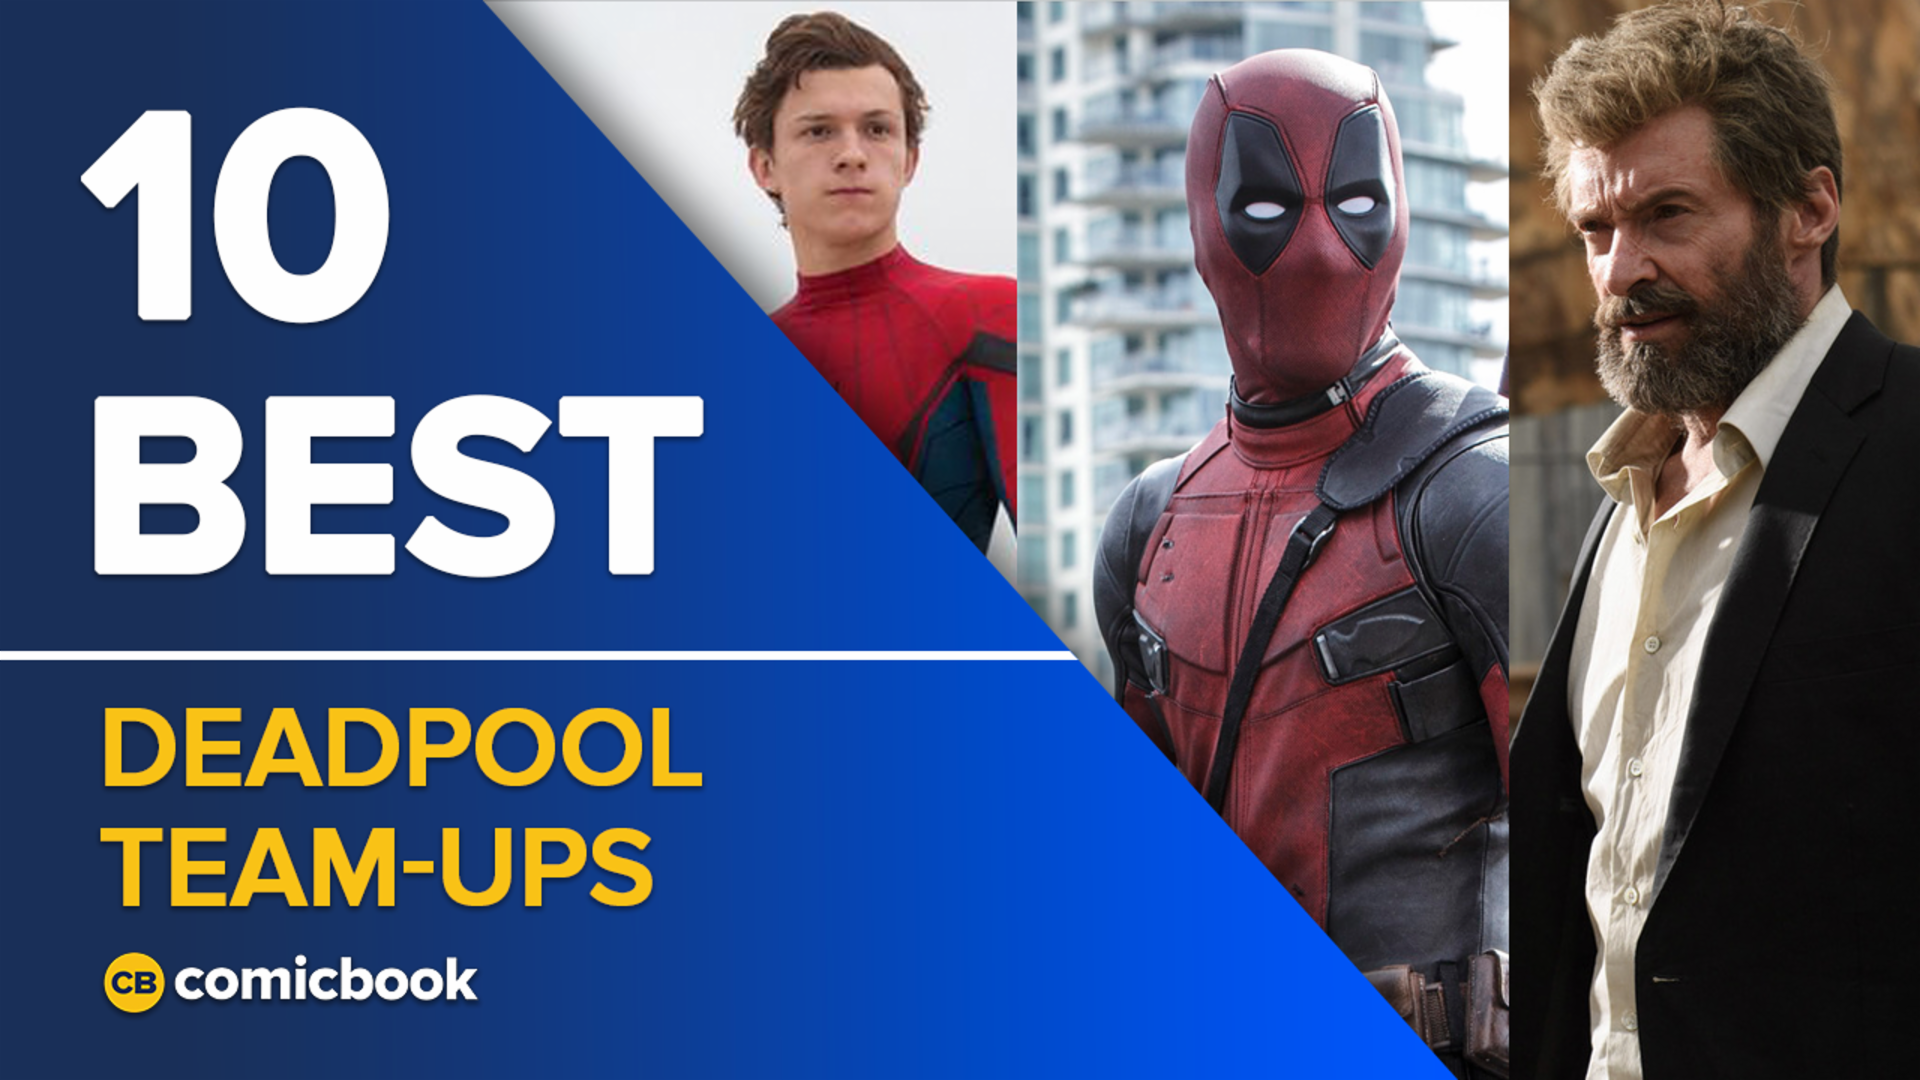 10 Best Deadpool Team-Ups screen capture